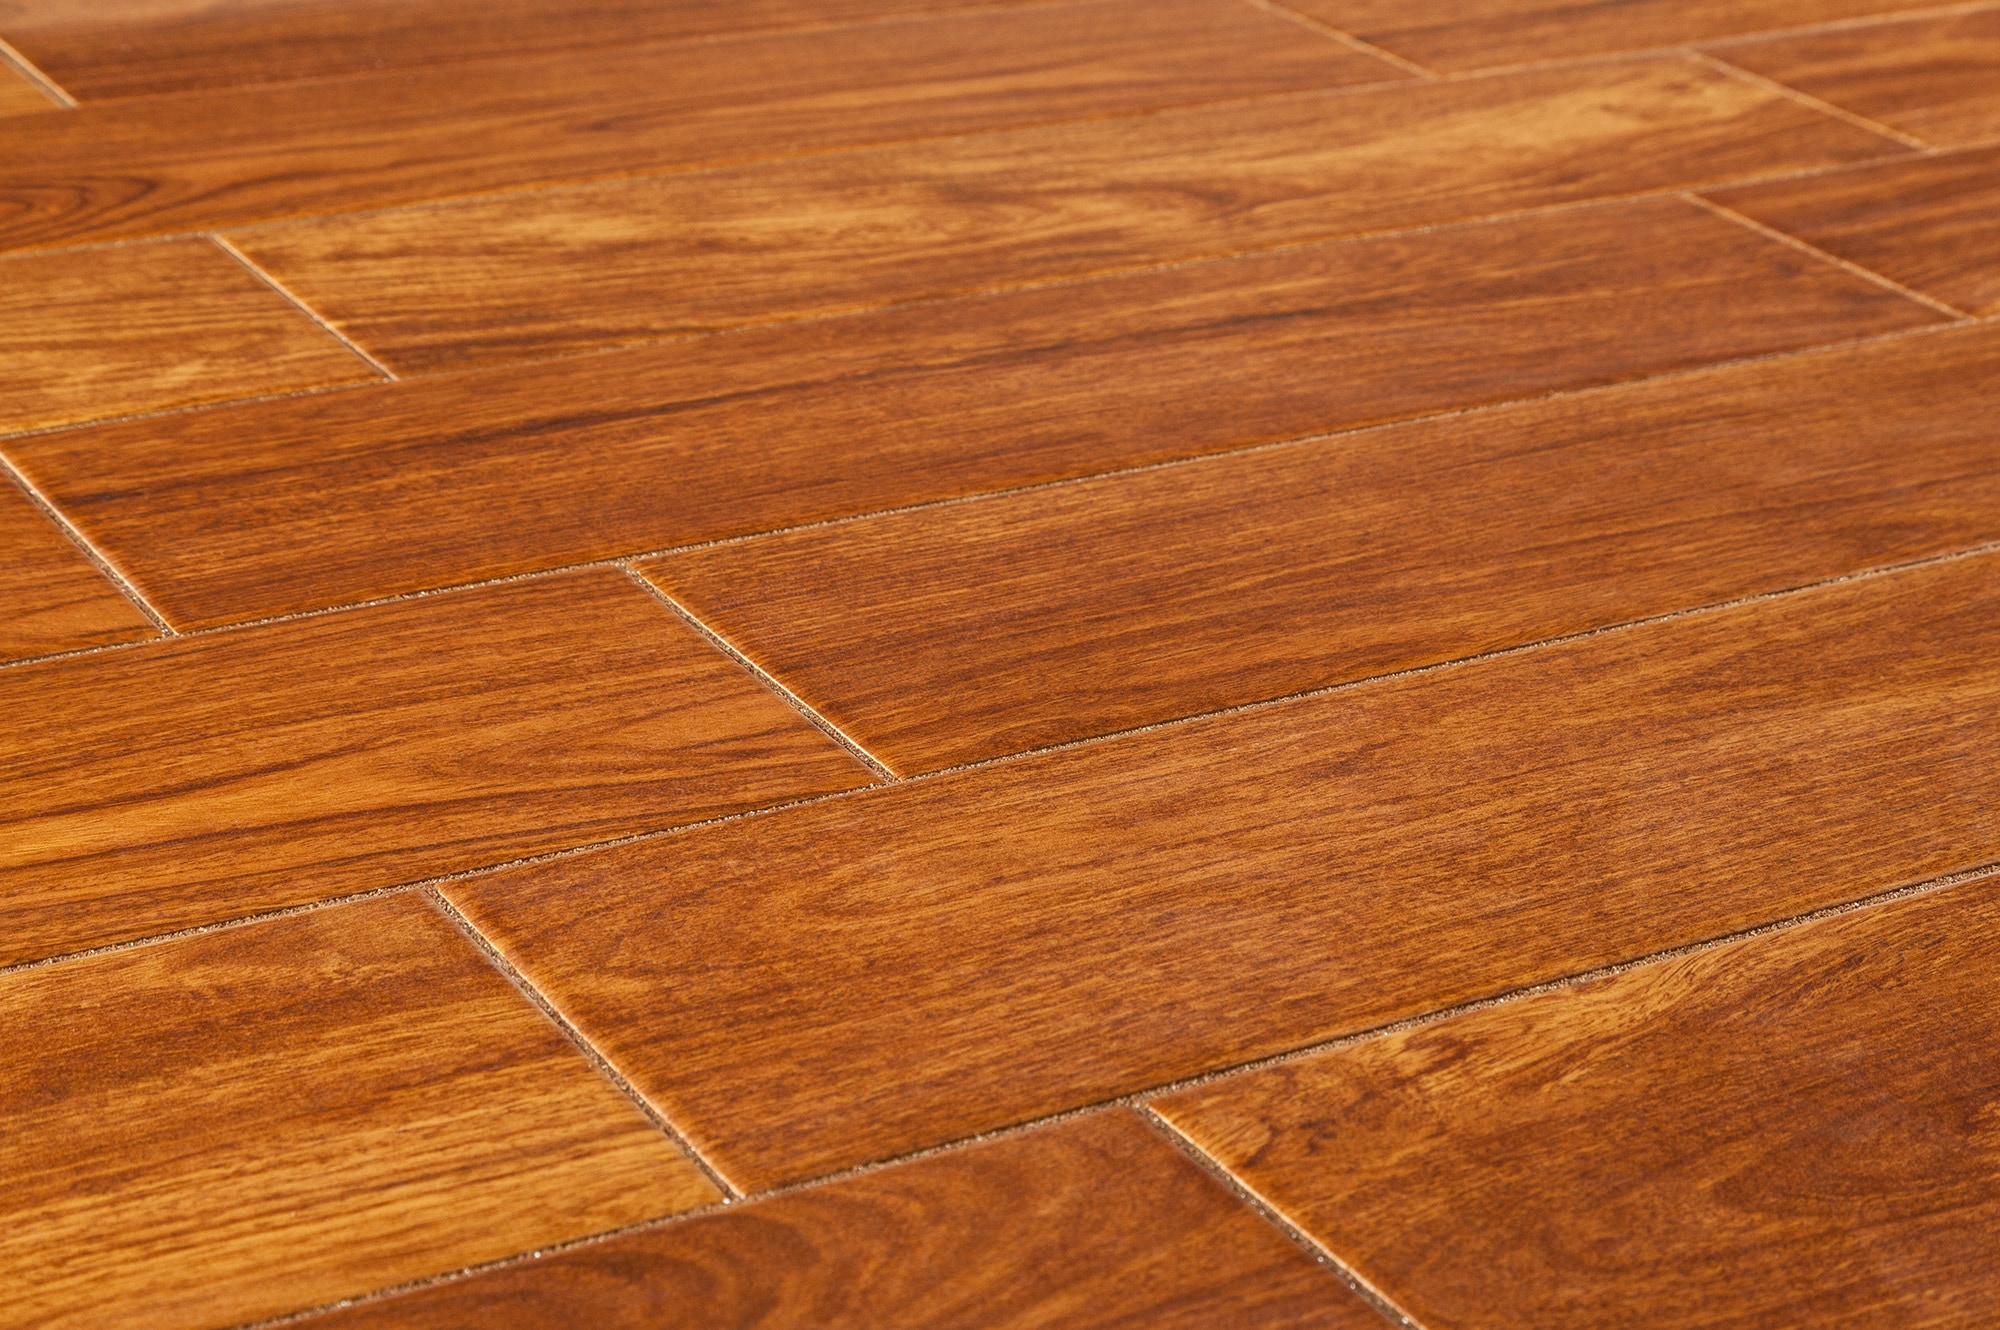 Wooden tile flooring